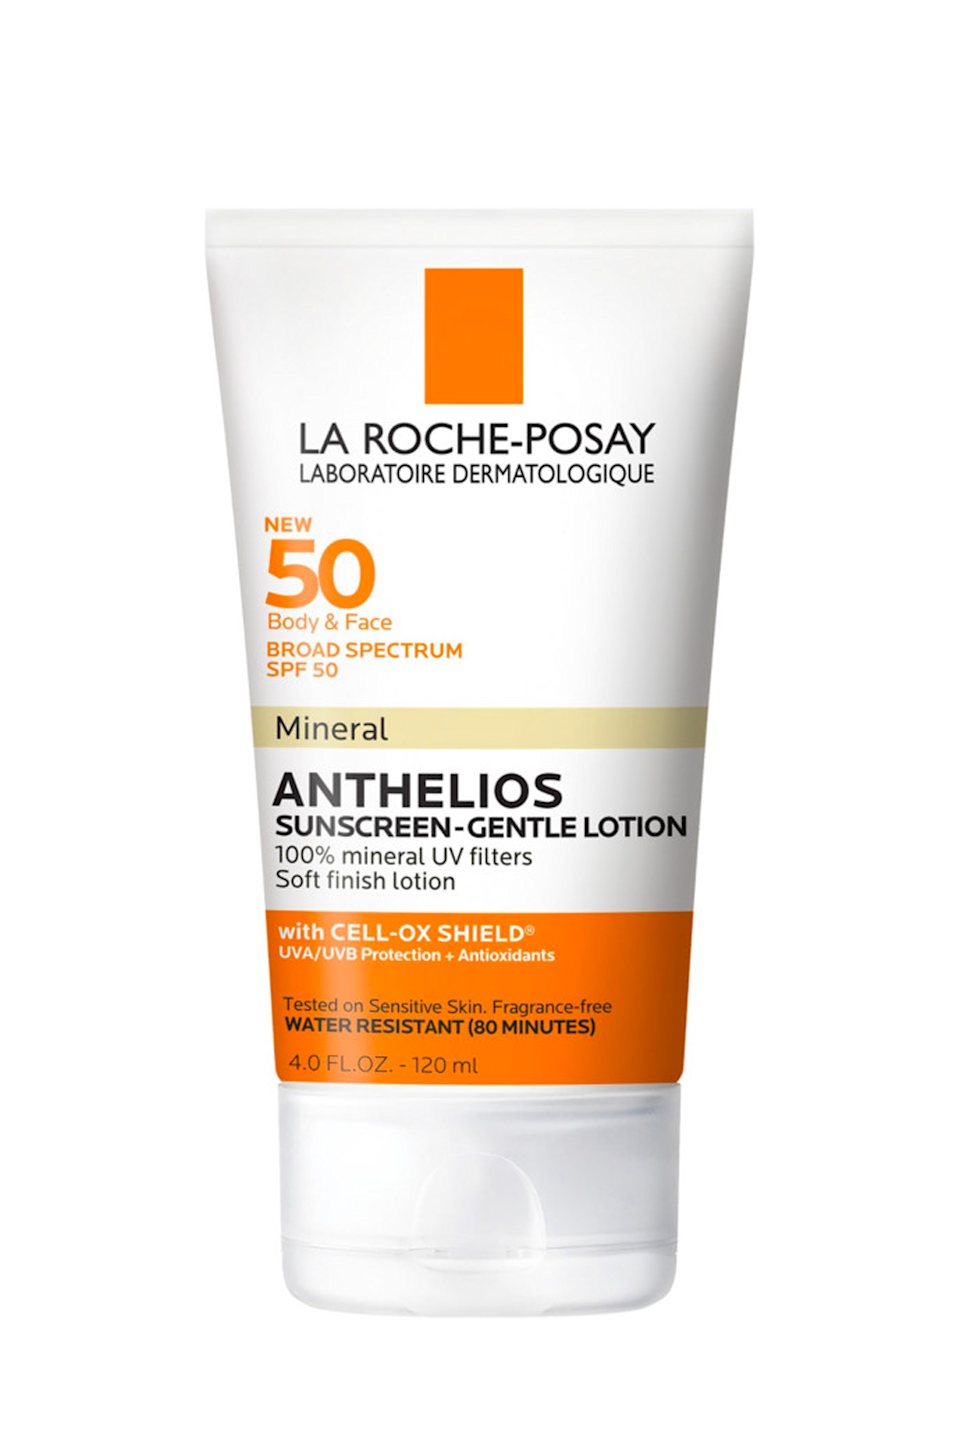 """<p><strong>La Roche-Posay</strong></p><p>laroche-posay.us</p><p><strong>$29.99</strong></p><p><a href=""""https://go.redirectingat.com?id=74968X1596630&url=https%3A%2F%2Fwww.laroche-posay.us%2Fanthelios-spf-50-mineral-sunscreen-gentle-lotion-antheliosbodymineral.html&sref=https%3A%2F%2Fwww.cosmopolitan.com%2Fstyle-beauty%2Fbeauty%2Fg35993297%2Fpregnancy-safe-sunscreen%2F"""" rel=""""nofollow noopener"""" target=""""_blank"""" data-ylk=""""slk:Shop Now"""" class=""""link rapid-noclick-resp"""">Shop Now</a></p><p>If you prefer a one-and-done situation, you can't go wrong with this gentle lotion that's easy to apply on your <a href=""""https://www.cosmopolitan.com/style-beauty/beauty/g9272802/best-sunscreens-for-face/"""" rel=""""nofollow noopener"""" target=""""_blank"""" data-ylk=""""slk:face"""" class=""""link rapid-noclick-resp"""">face</a> <em>and</em> your body. The mineral blockers (titanium dioxide and zinc oxide) and fragrance-free formula mean this bb is pregnancy safe, and it leaves your skin with a <strong>soft, non-greasy texture that's comfortable for all-day wear</strong>. Just don't forget to reapply it every two hours, k?</p>"""